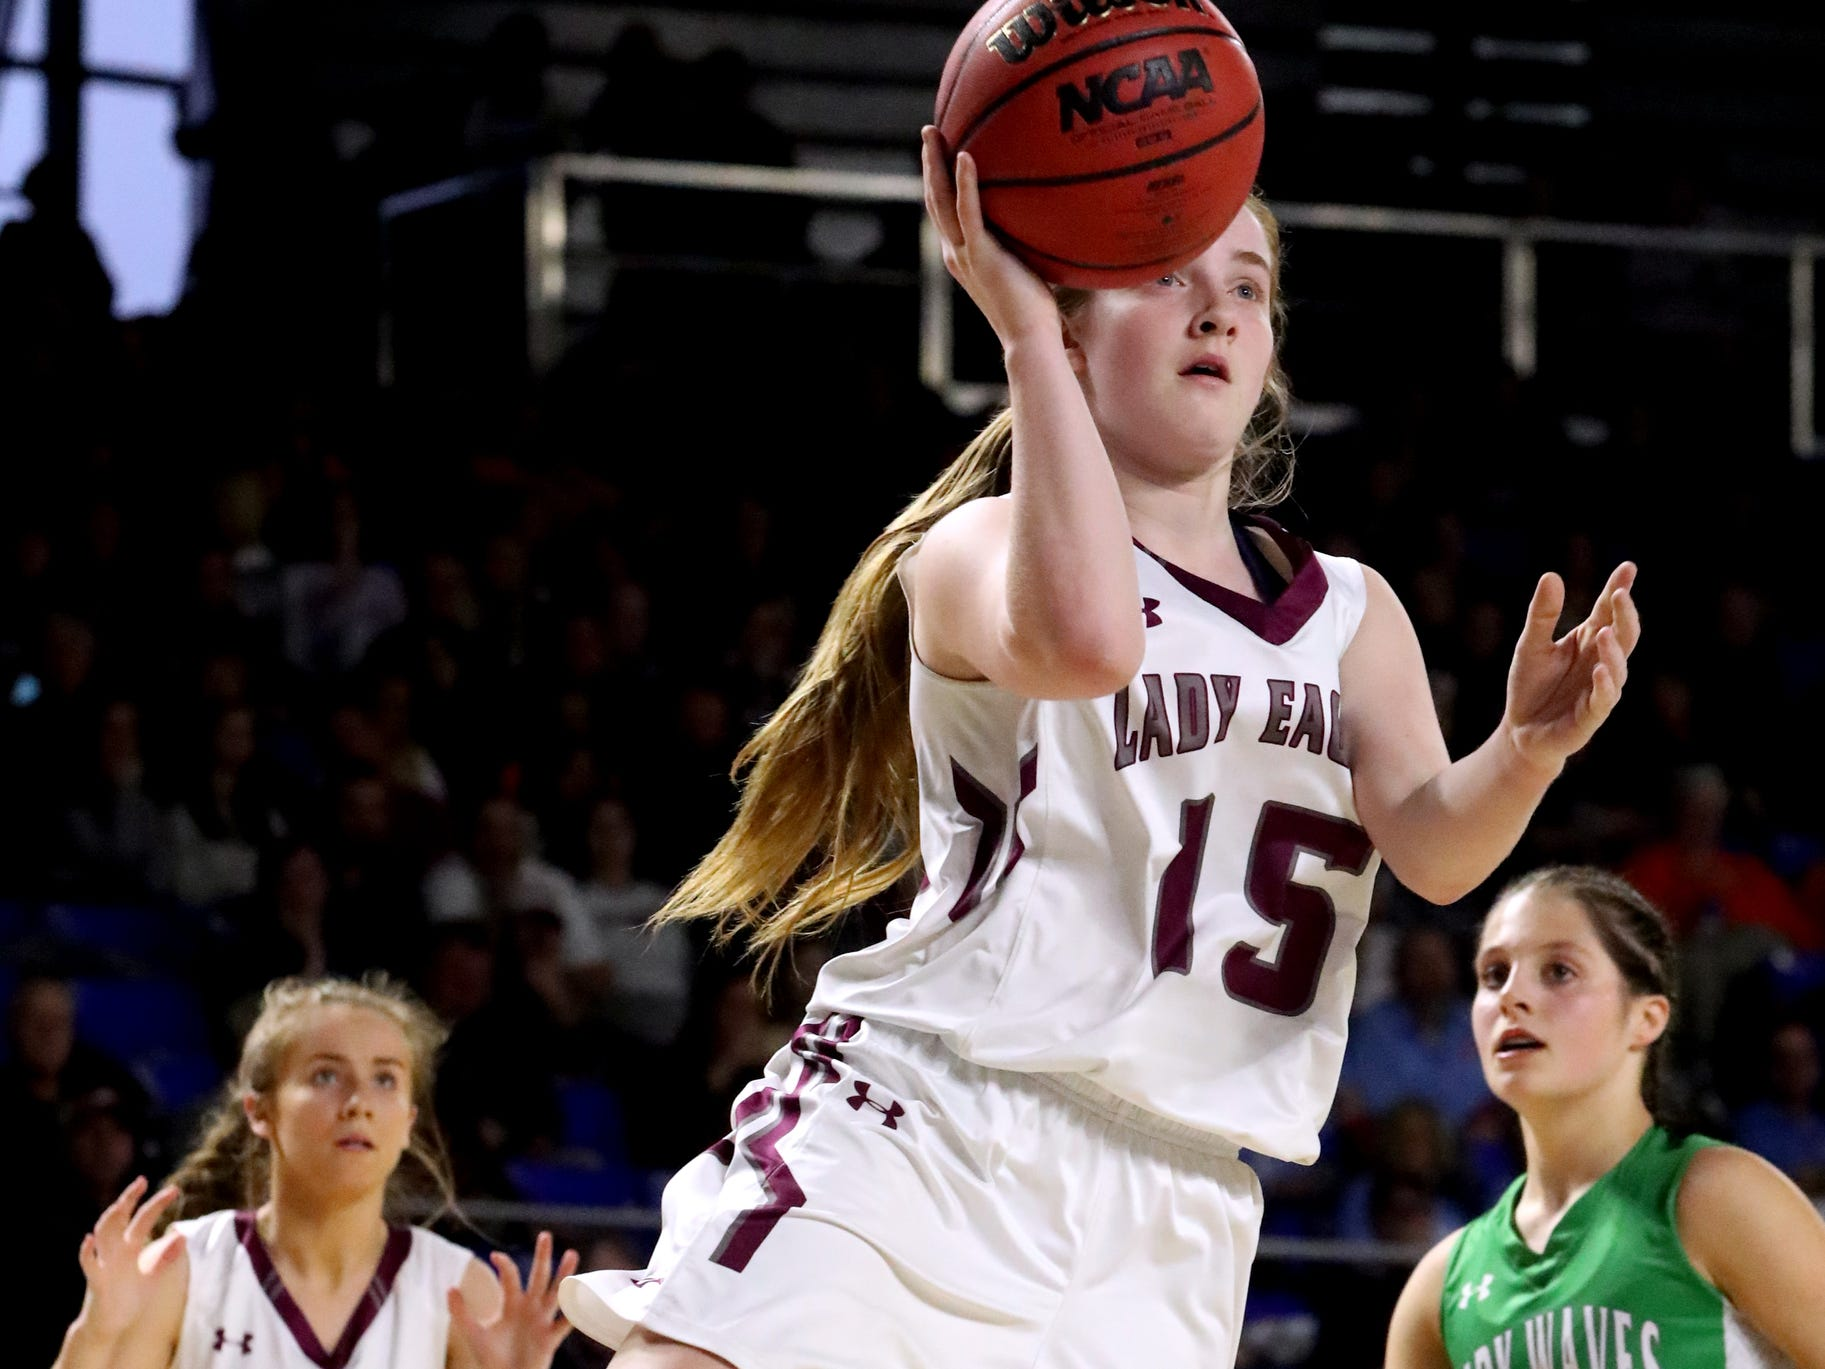 Eagleville's Makayla Moates (15) shoots the ball as teammate Eagleville's Haylee Ferguson (00) reacts in th background during the quarterfinal round of the TSSAA Div. 1 Class A Girls State Tournament Midway, on Thursday, March 7, 2019, at Murphy Center in Murfreesboro, Tenn.